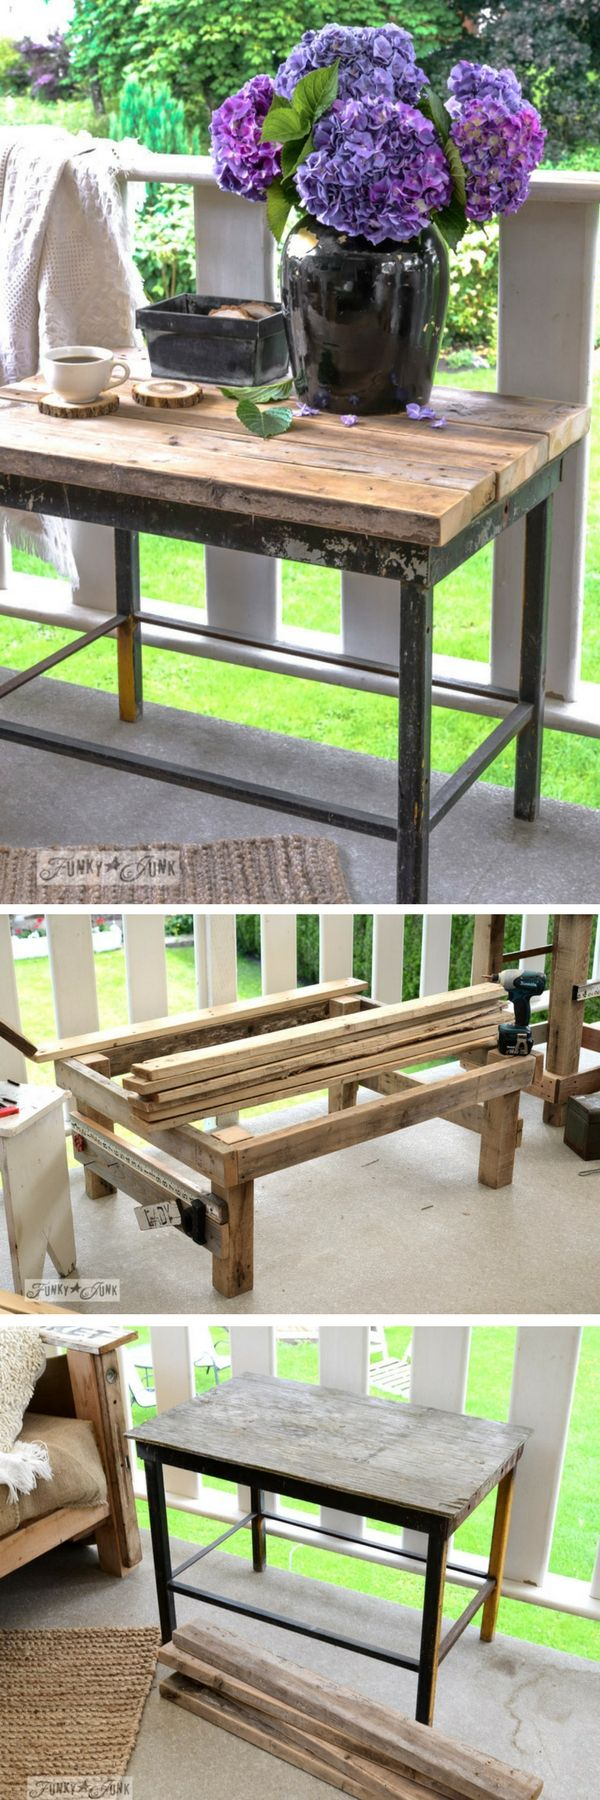 Check out how to make a DIY wooden outdoor table from 2x4s @istandarddesign